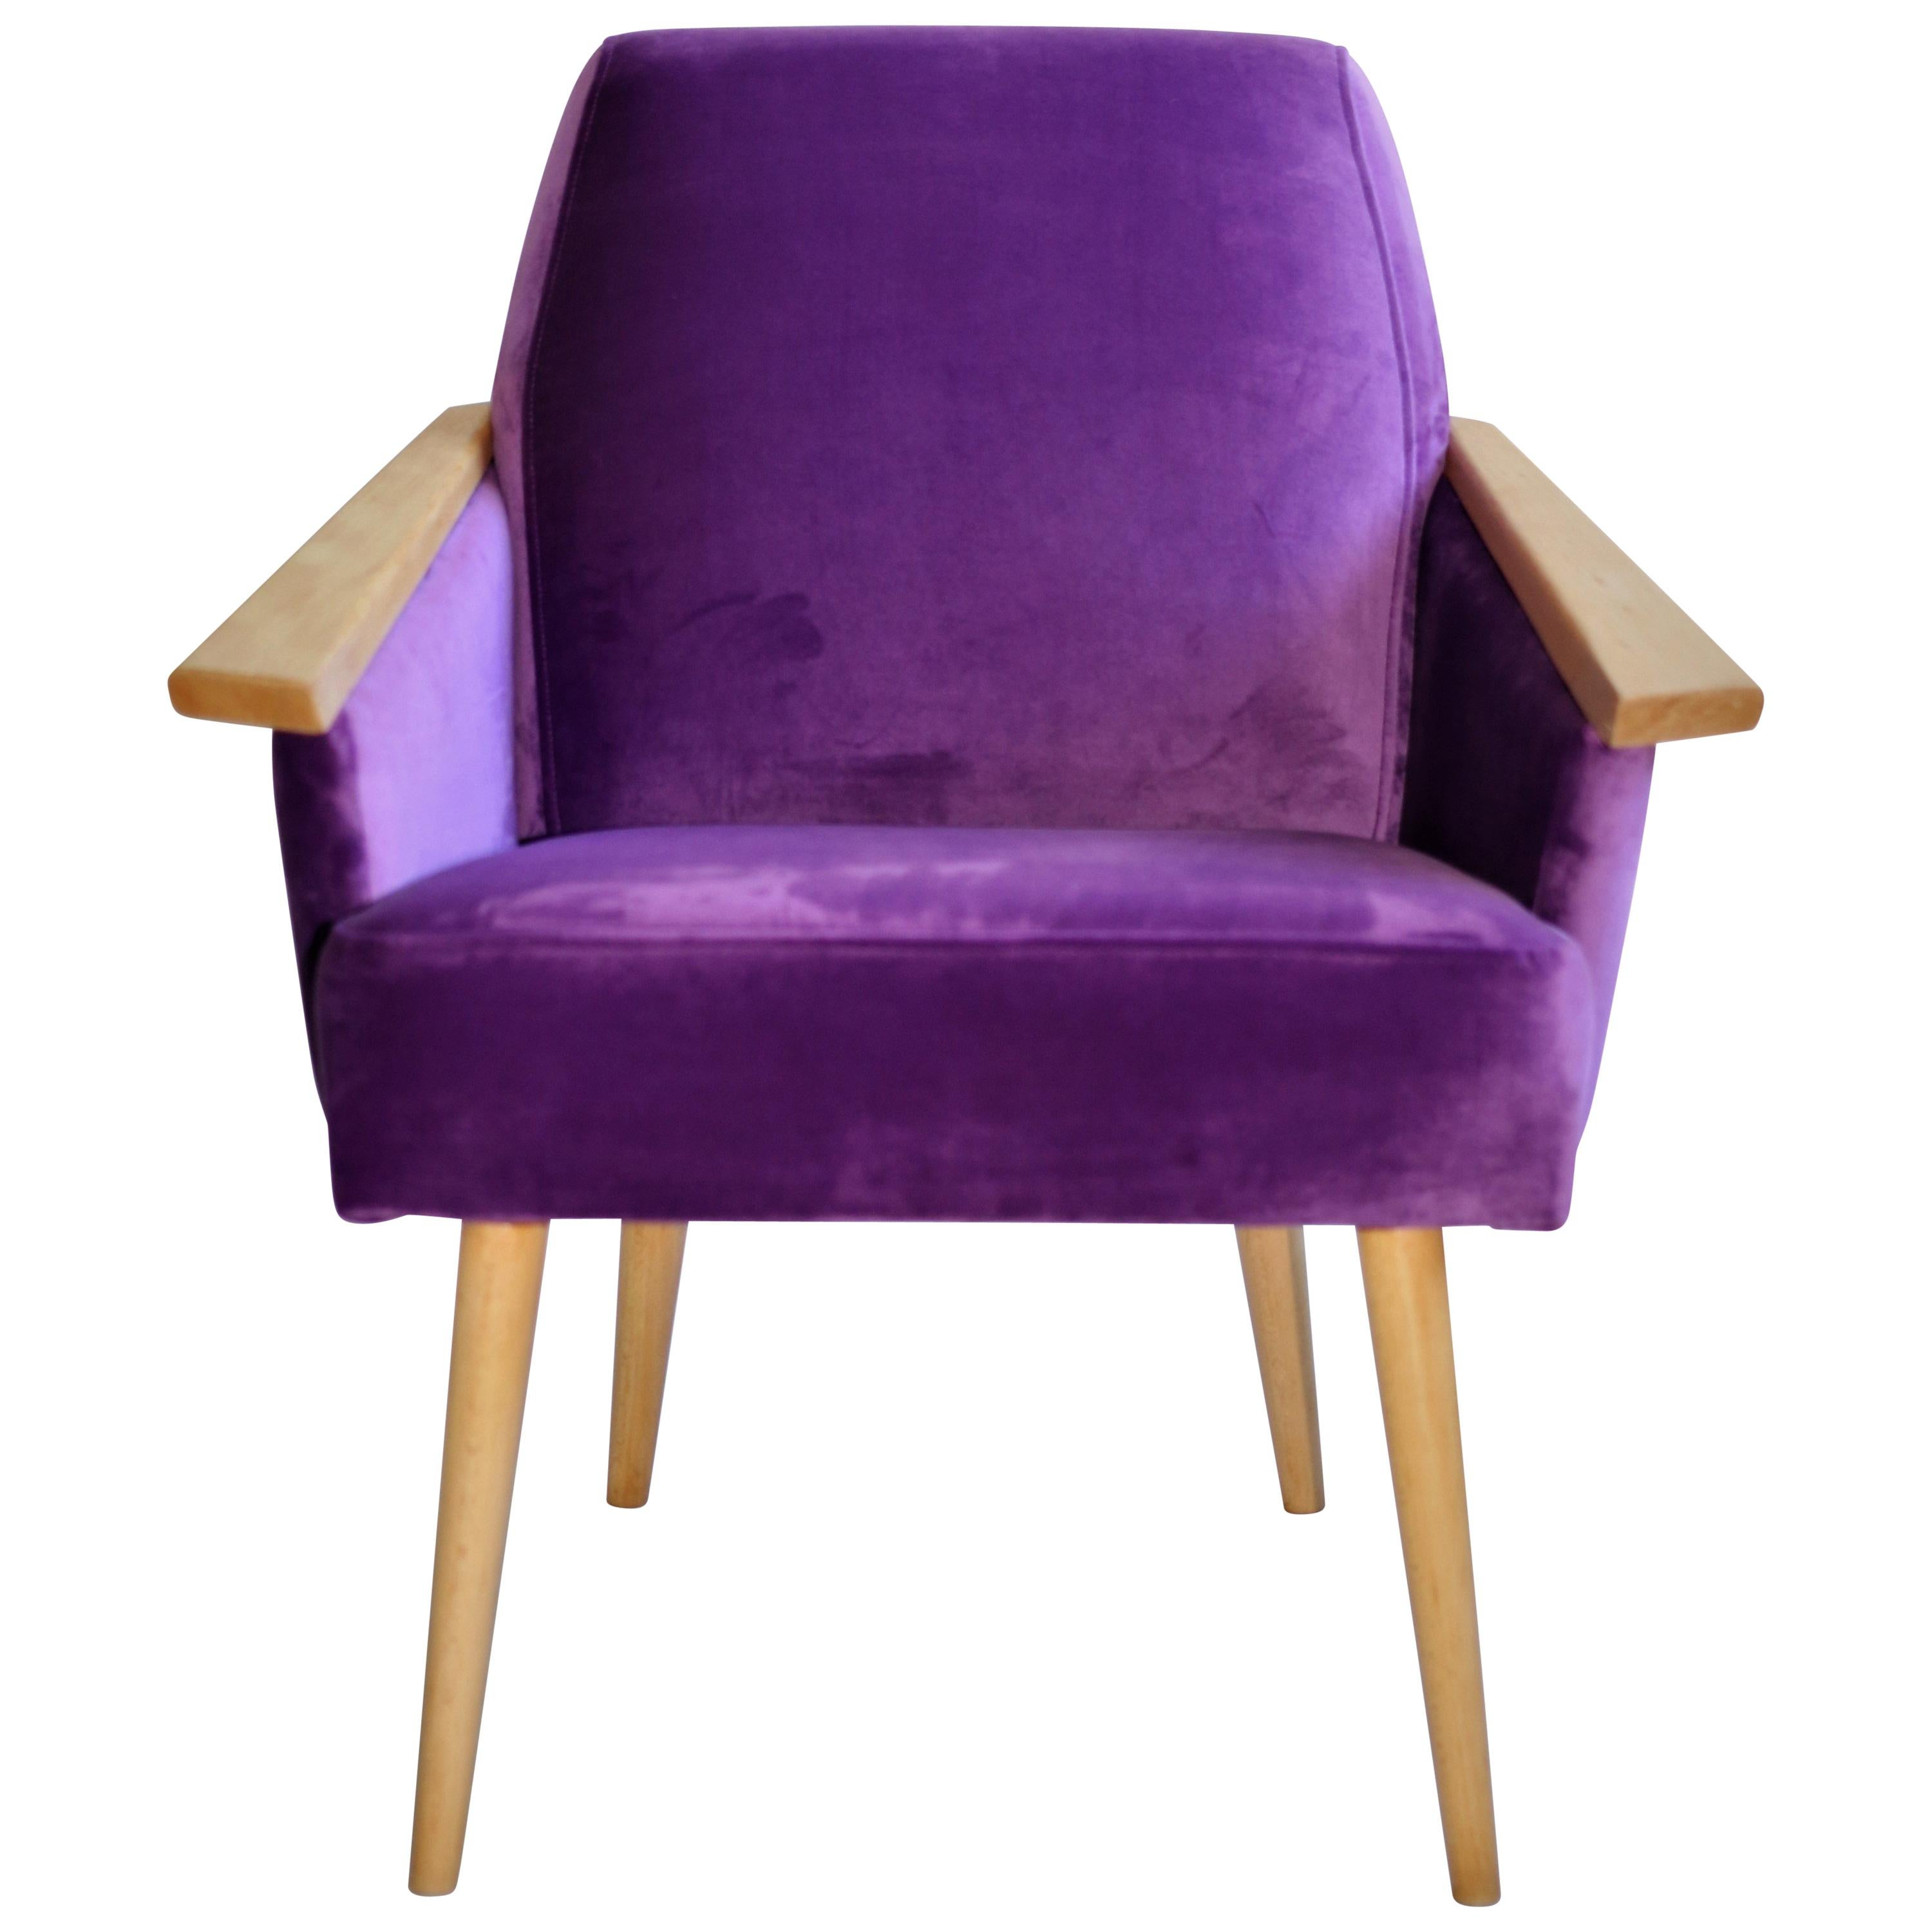 Polish Club Armchair In Purple Velvet From 20th Century For Sale